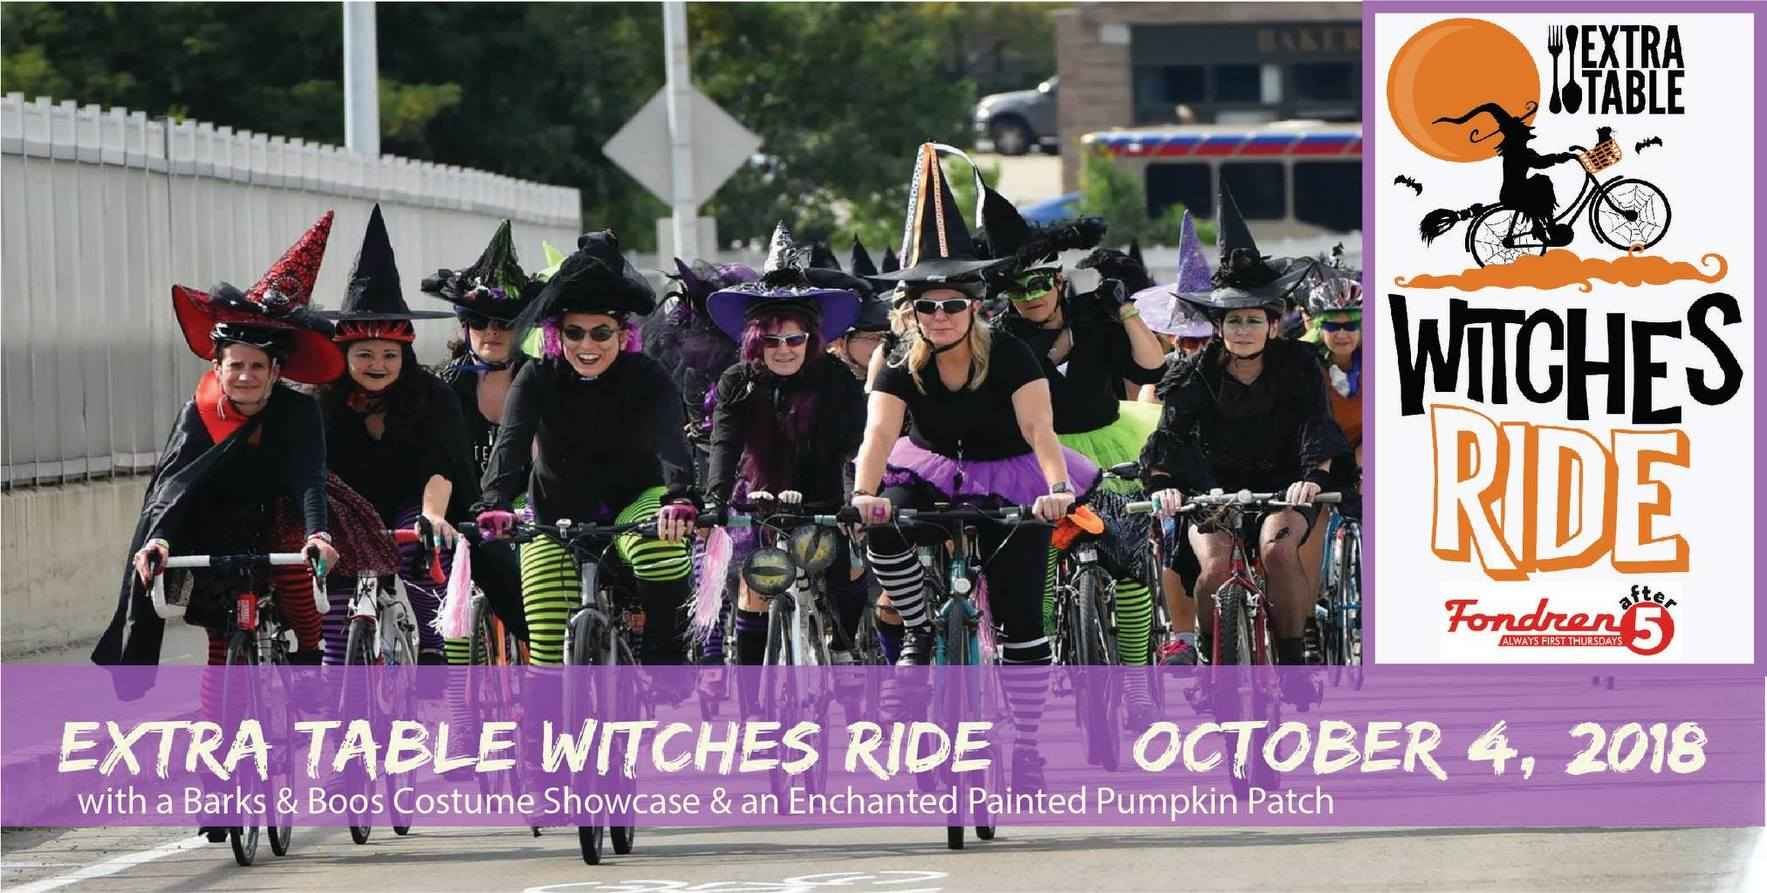 Extra Table Witches Ride......the movie Hocus Pocus, Pets & Pumpkins, too! image